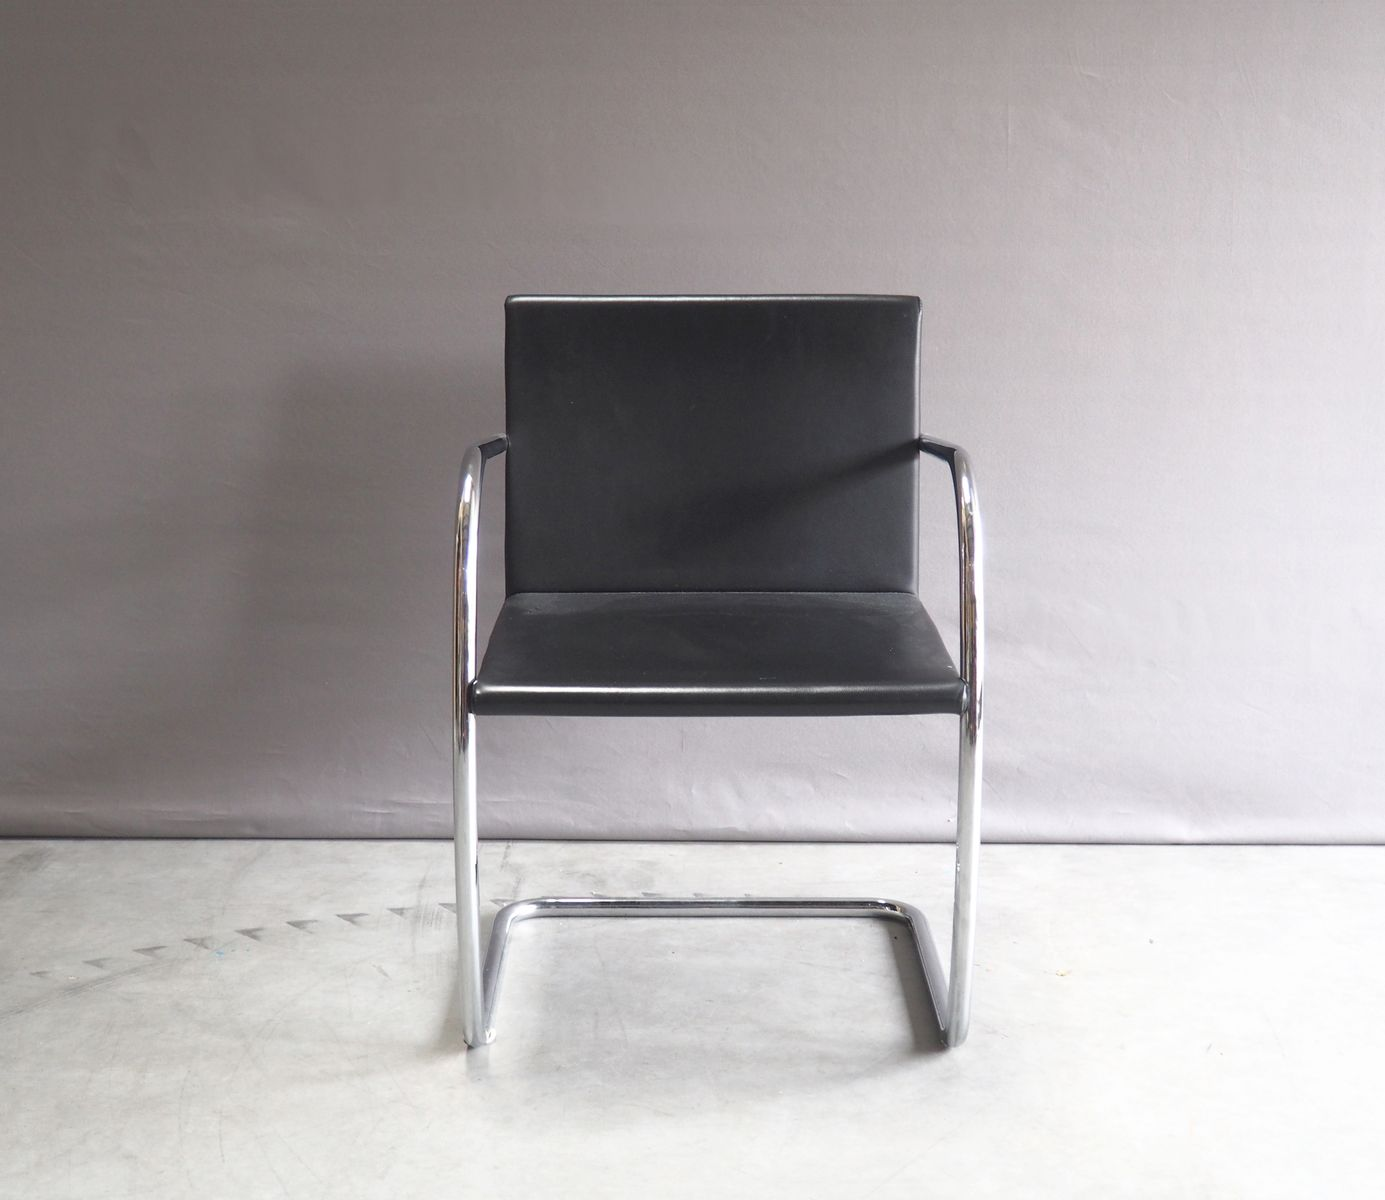 Mies Brno Chair chrome and leather brno chairmies van der rohe for knoll